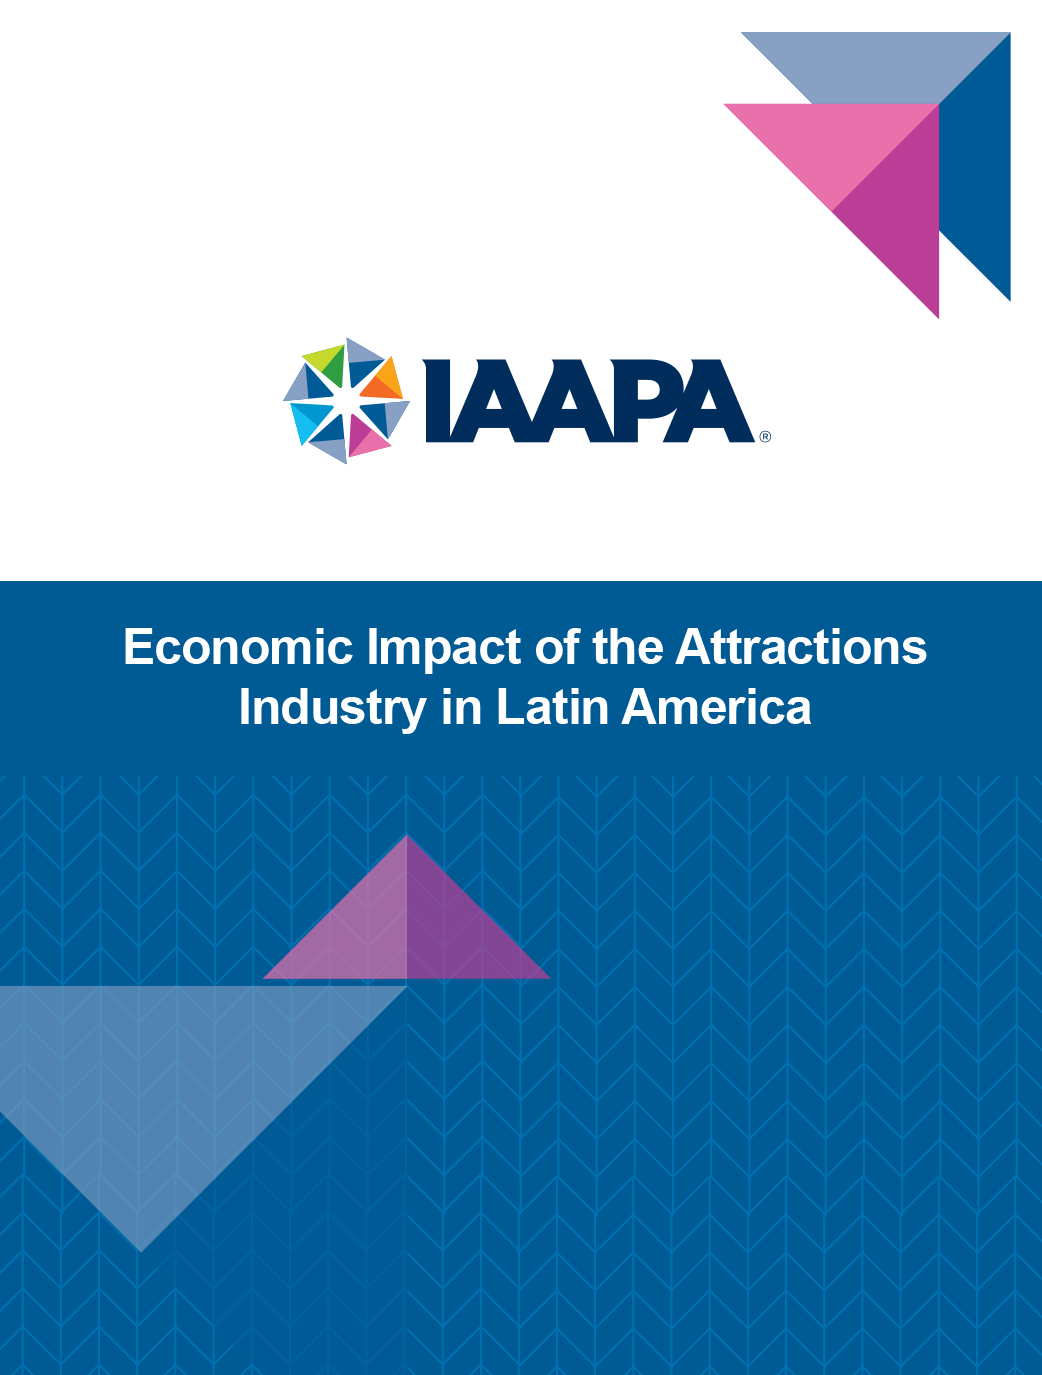 Economic Impact of the Attractions Industry in Latin America